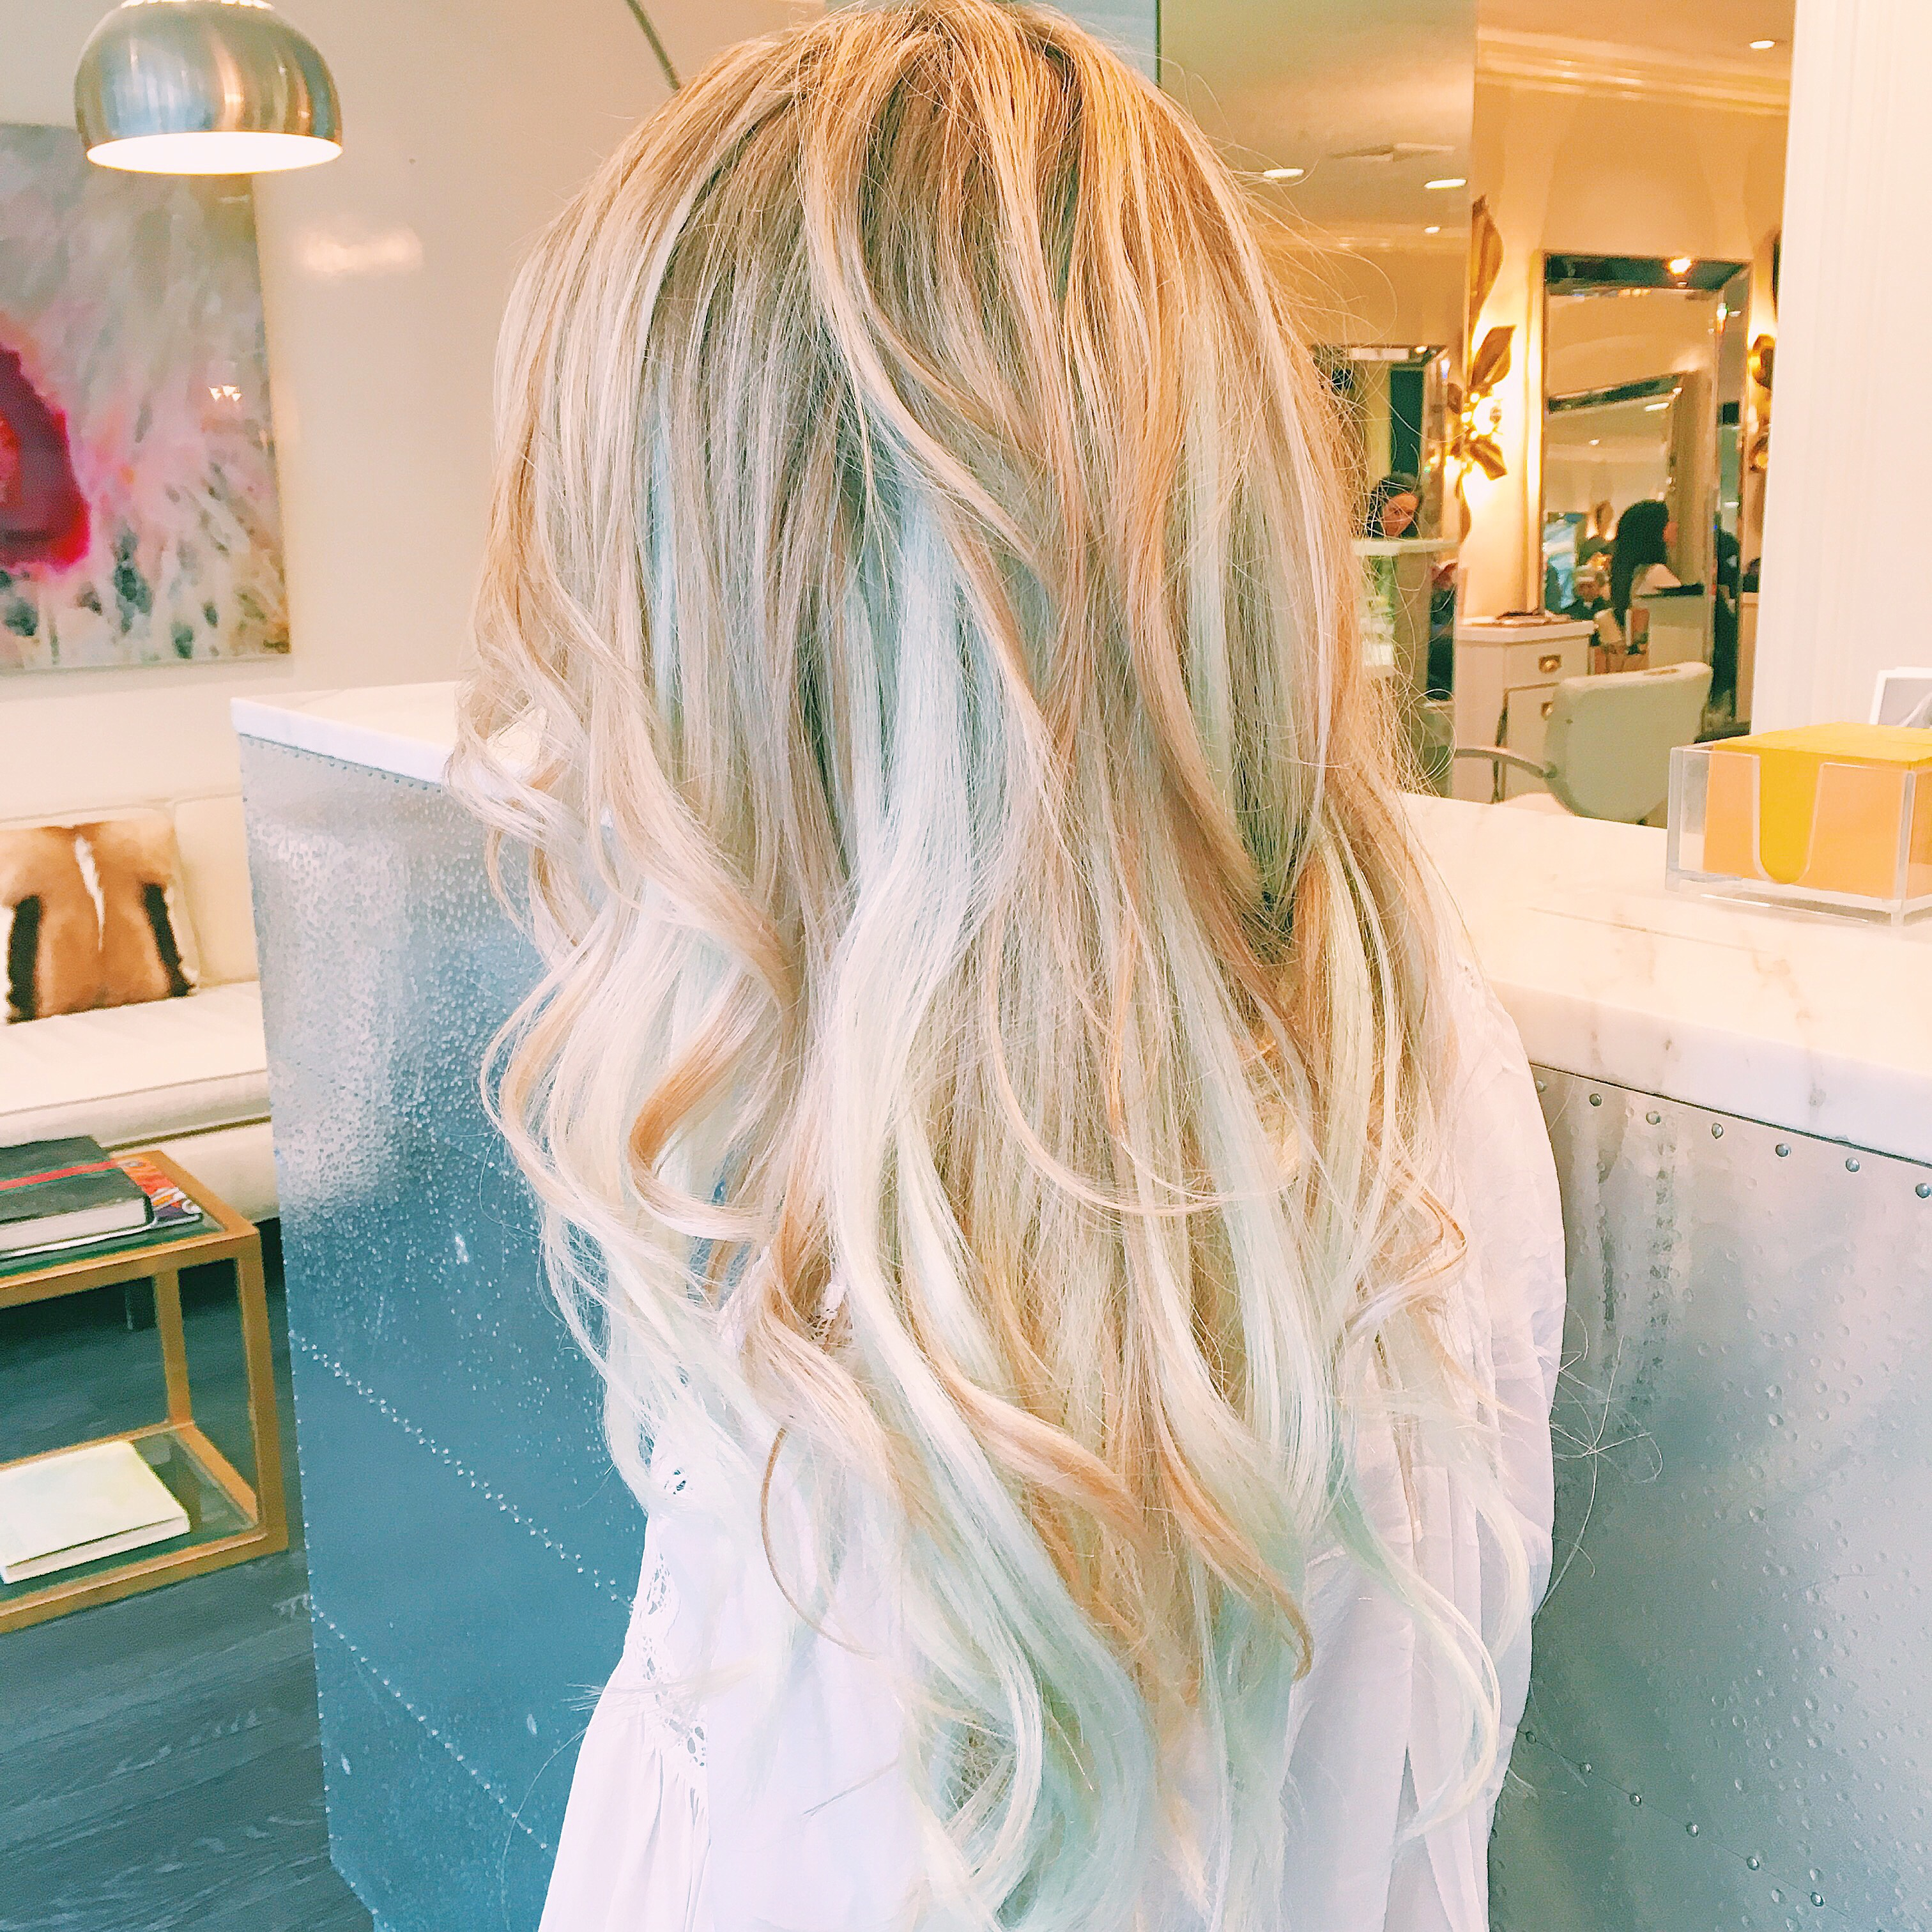 Mermaid Hair With Zotos Professional Blondeonearth